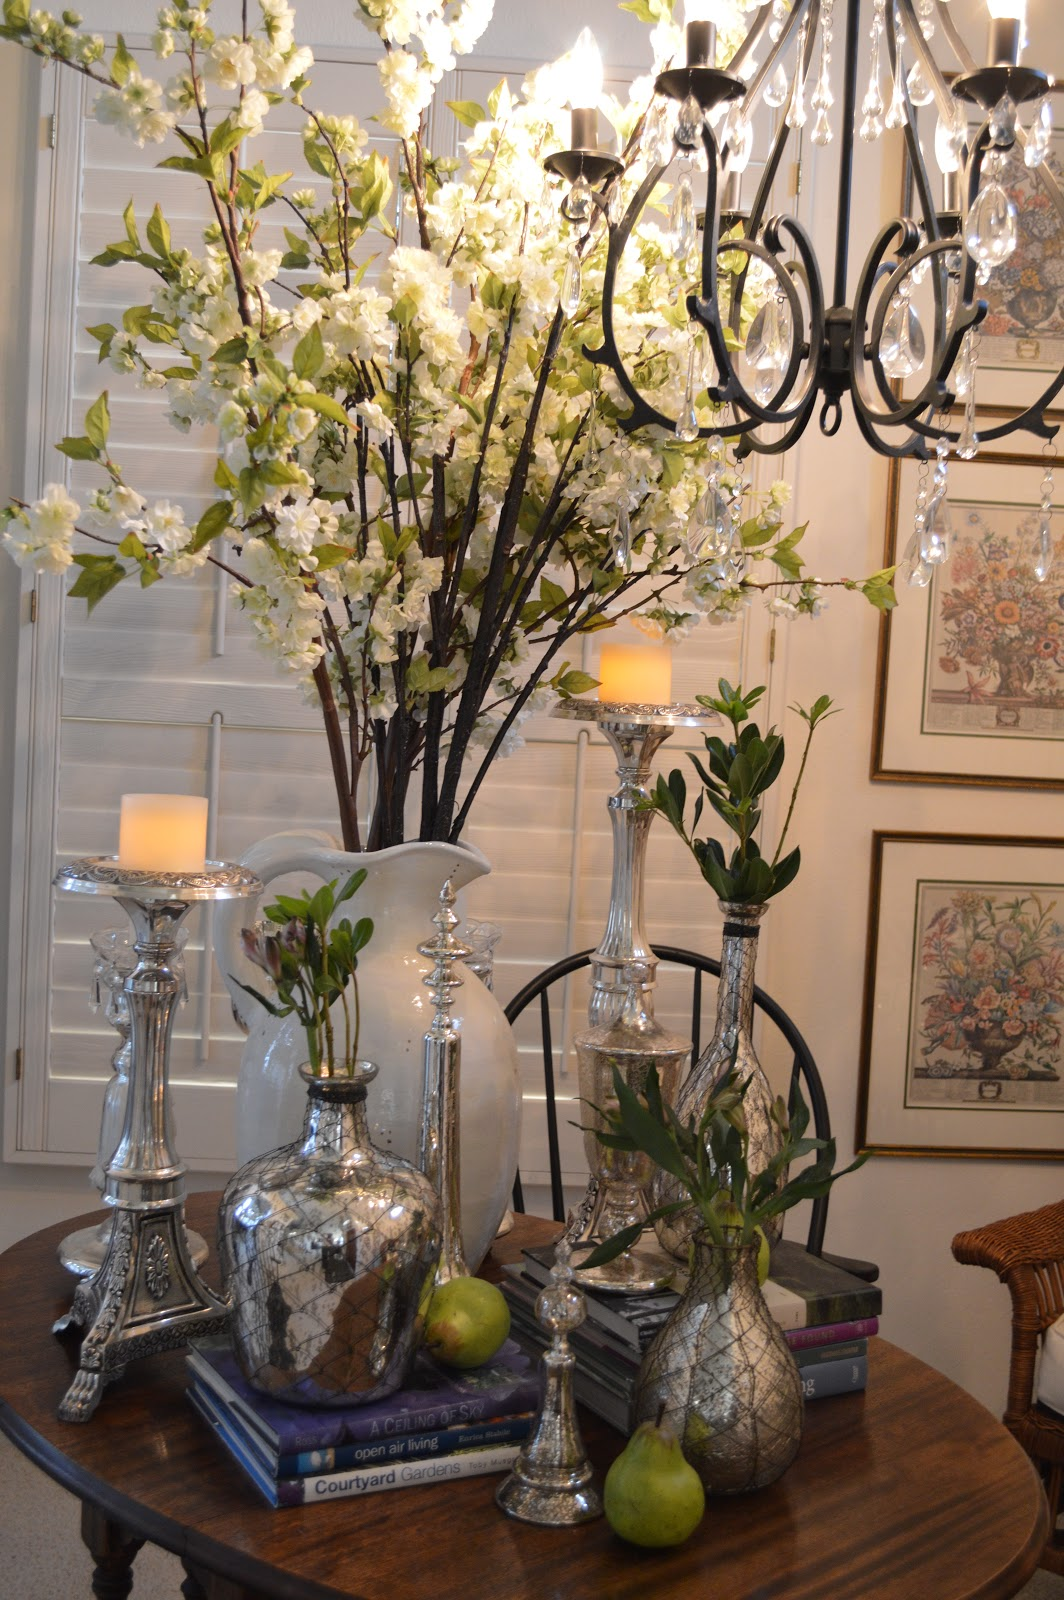 Decorative Items For Living Room: Friendship, Life And Style: Winter Into Spring Decor